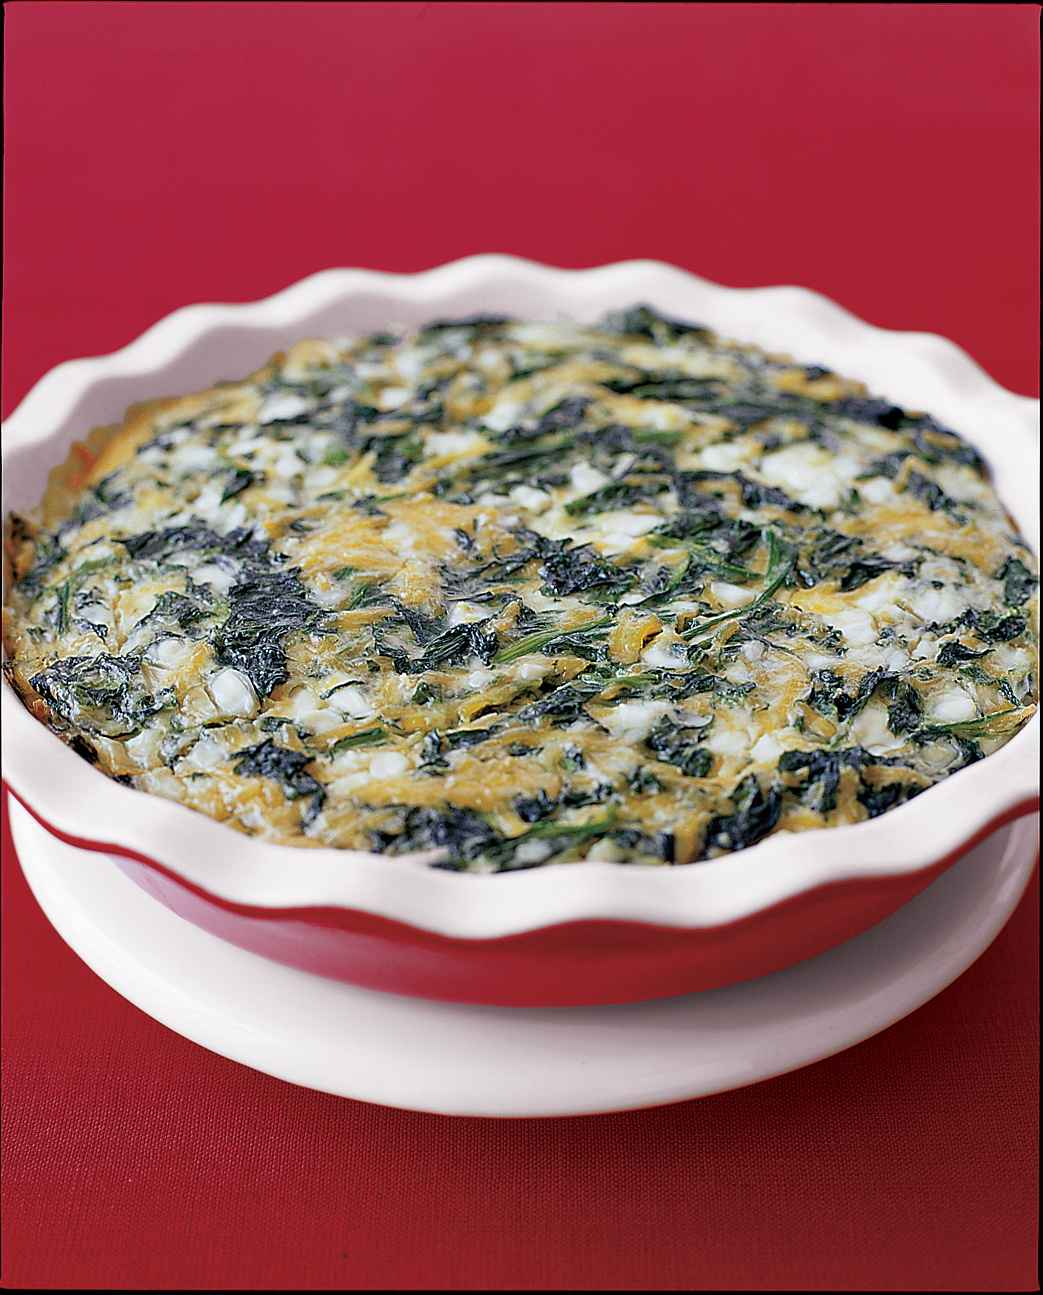 Spinach-and-Cheese Casserole